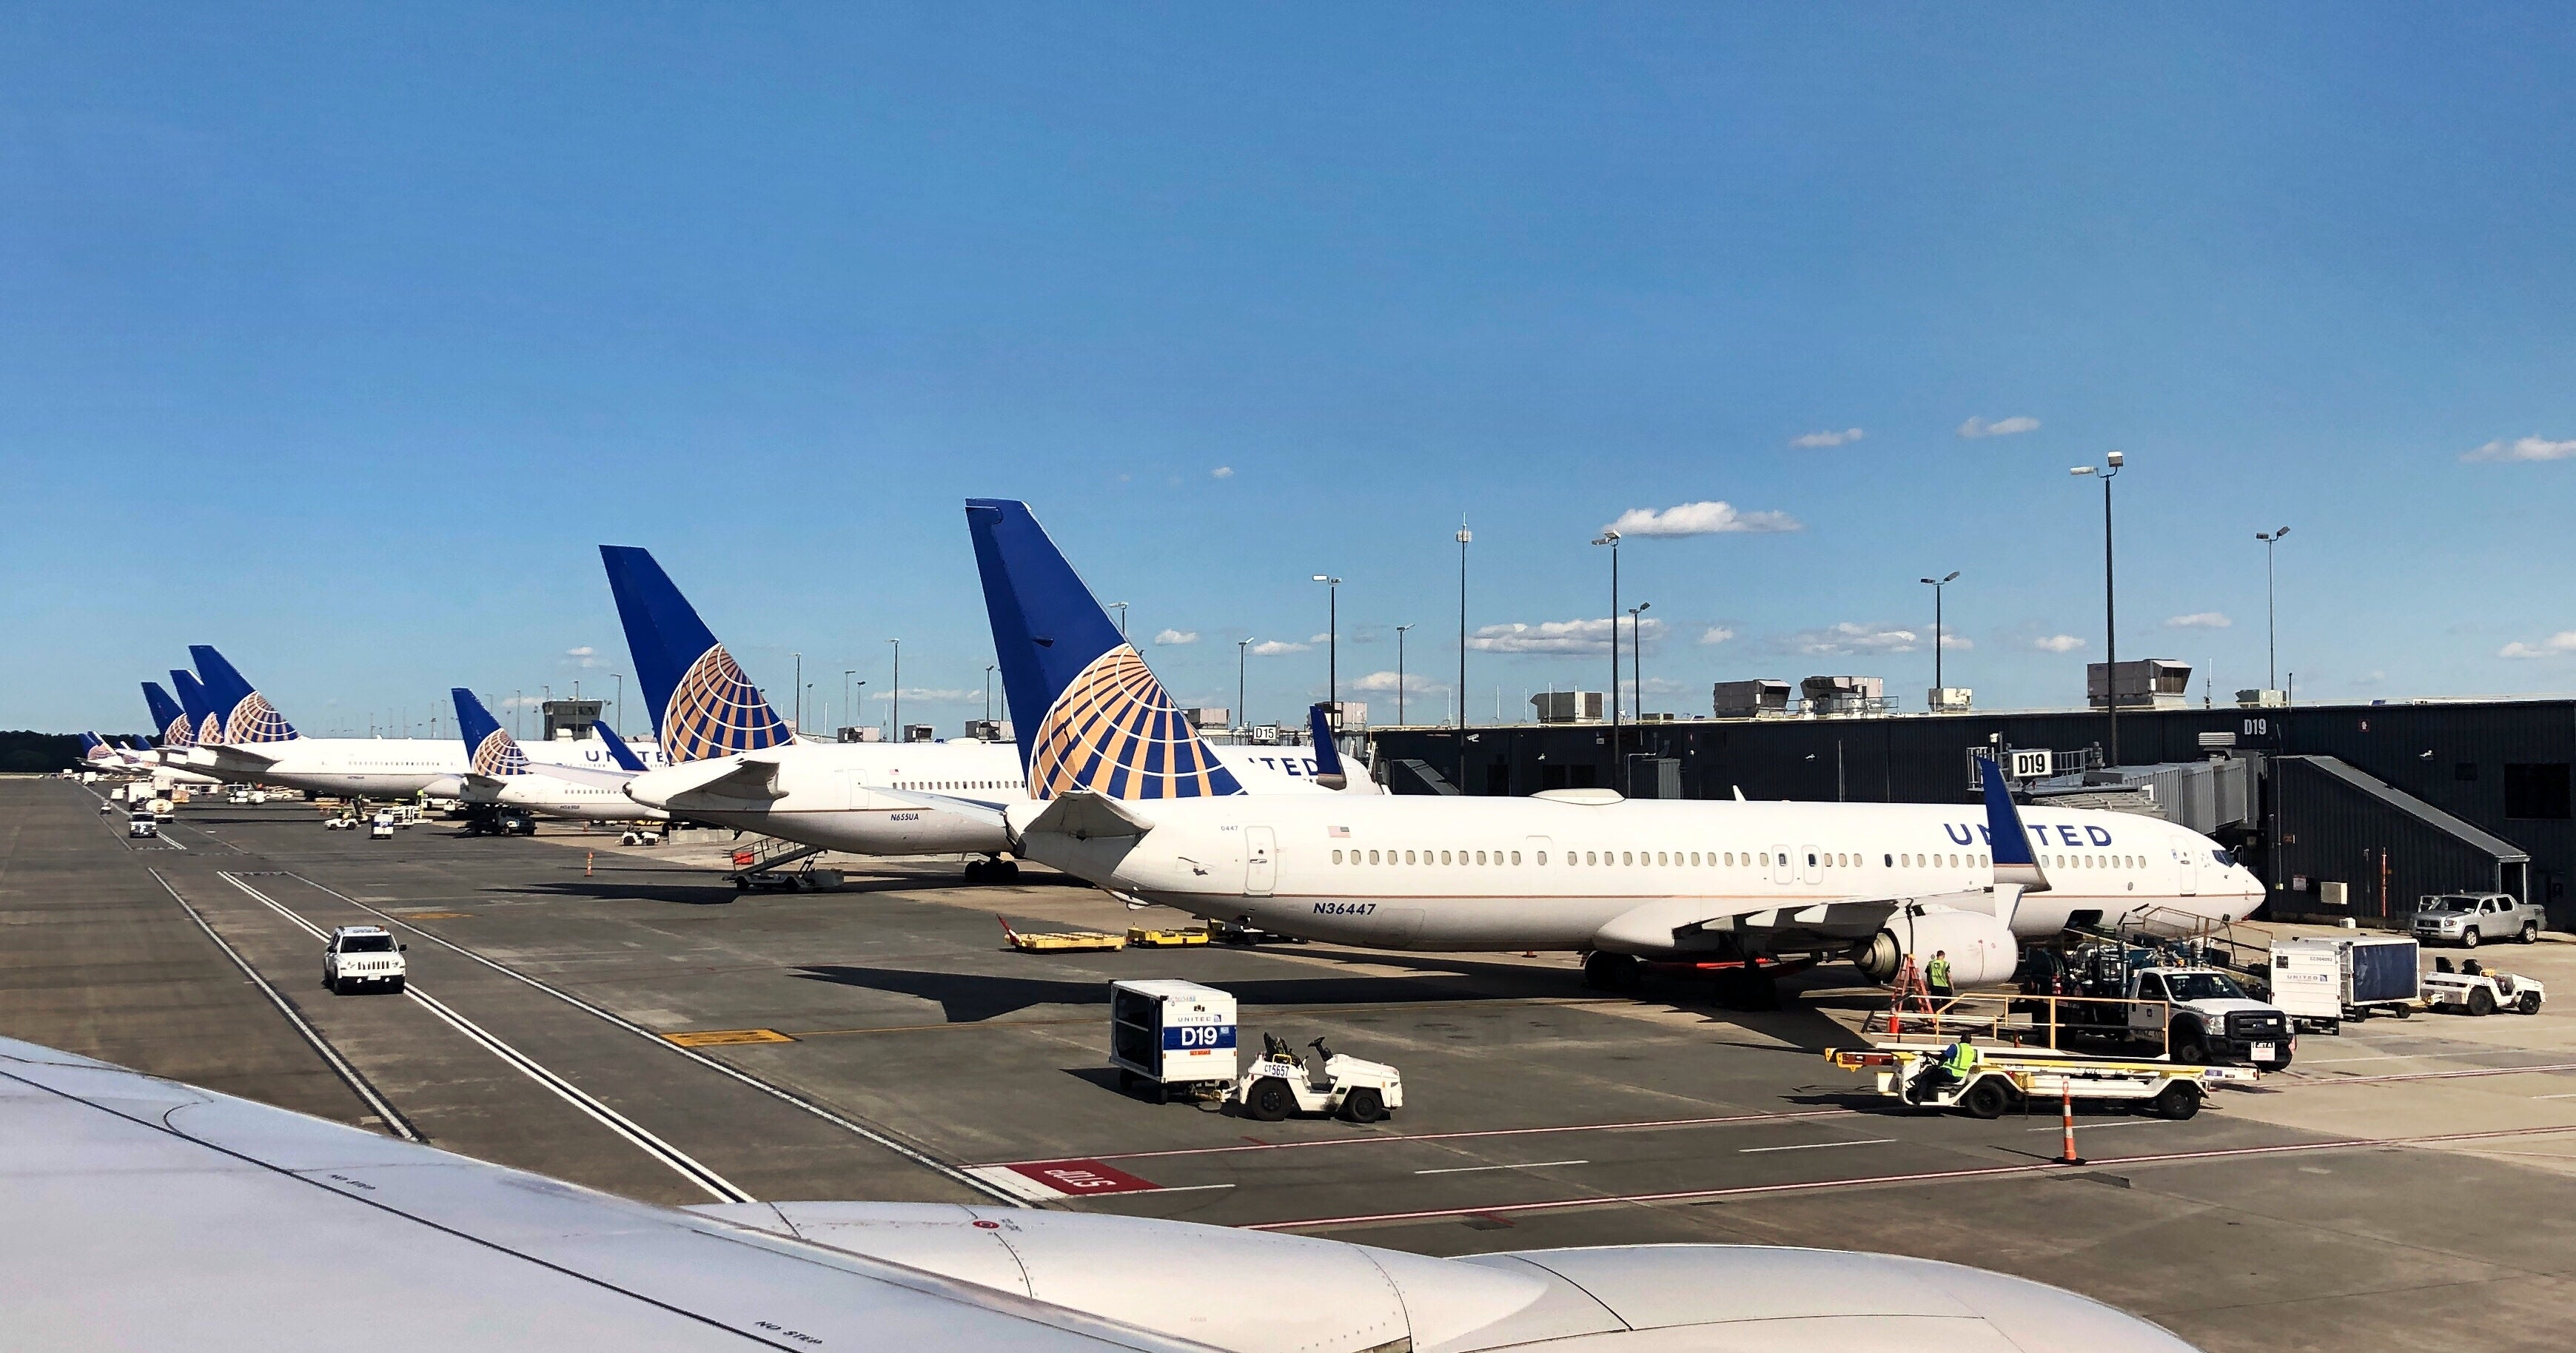 The Ultimate Guide to Getting Upgraded on United Airlines